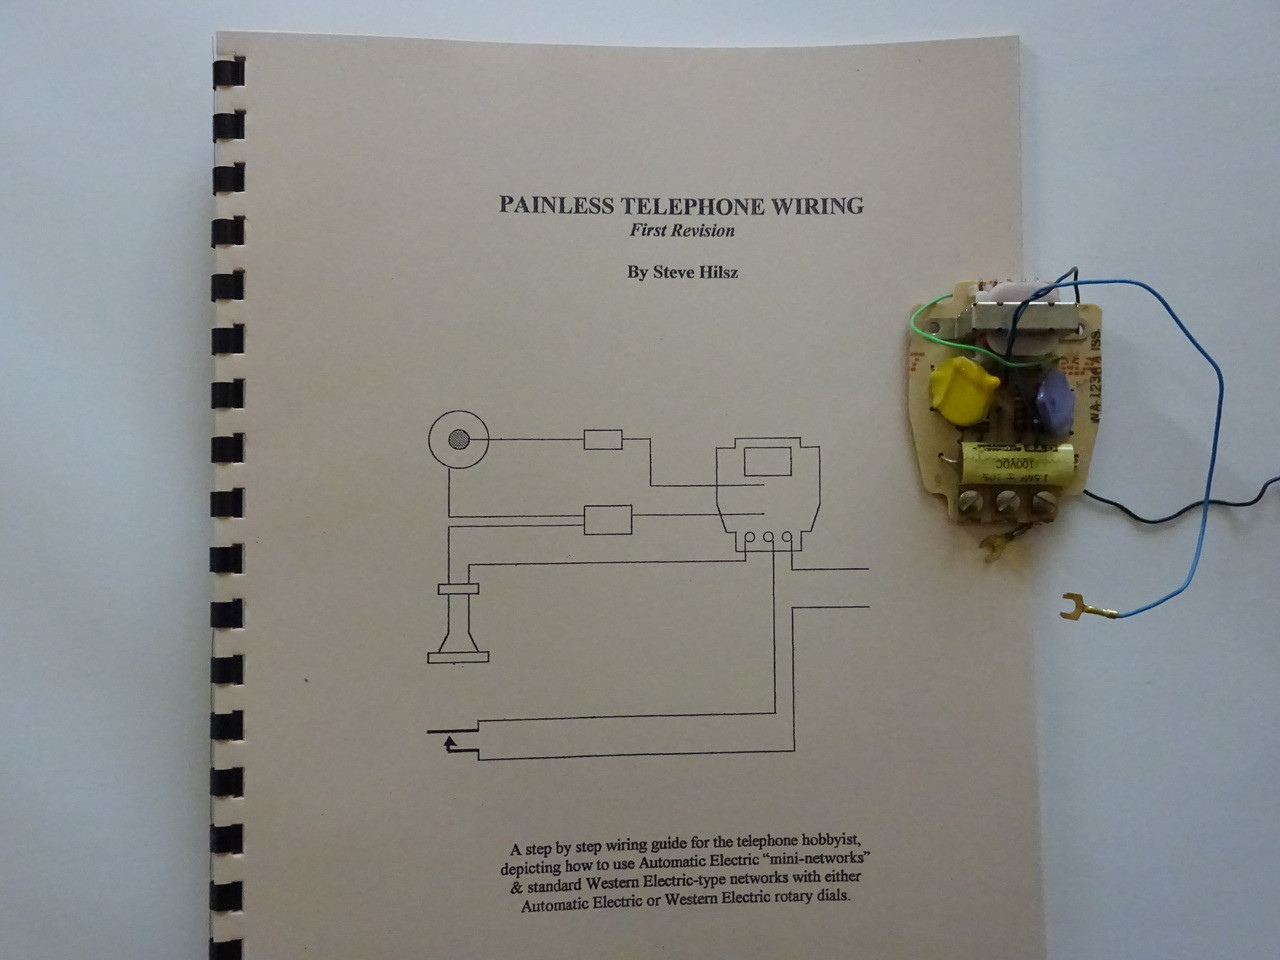 rotary dial telephone wiring diagram 2007 cobalt ls stereo antique do it yourself with the painless book loading zoom